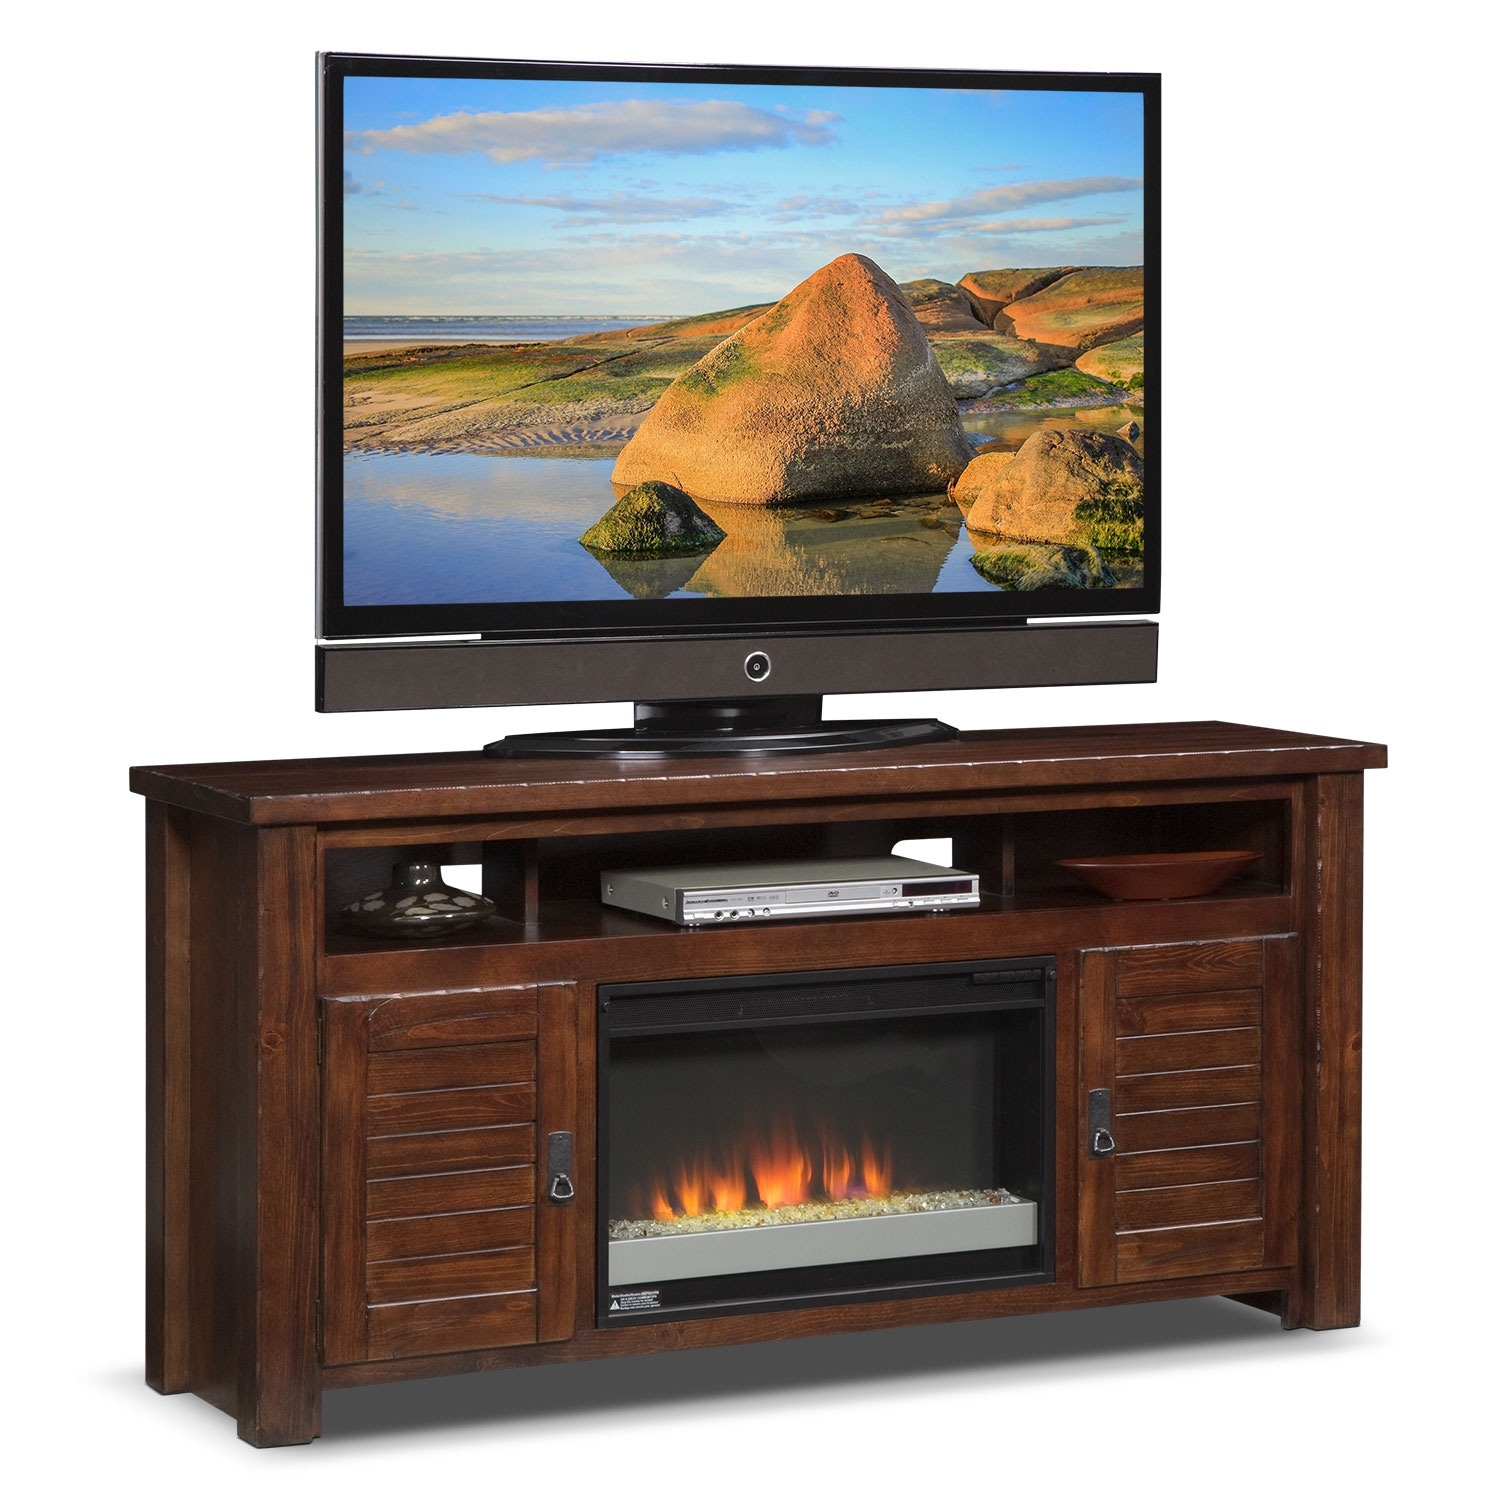 Prairie 64 Fireplace Tv Stand With Contemporary Insert Mesquite Pine Value City Furniture